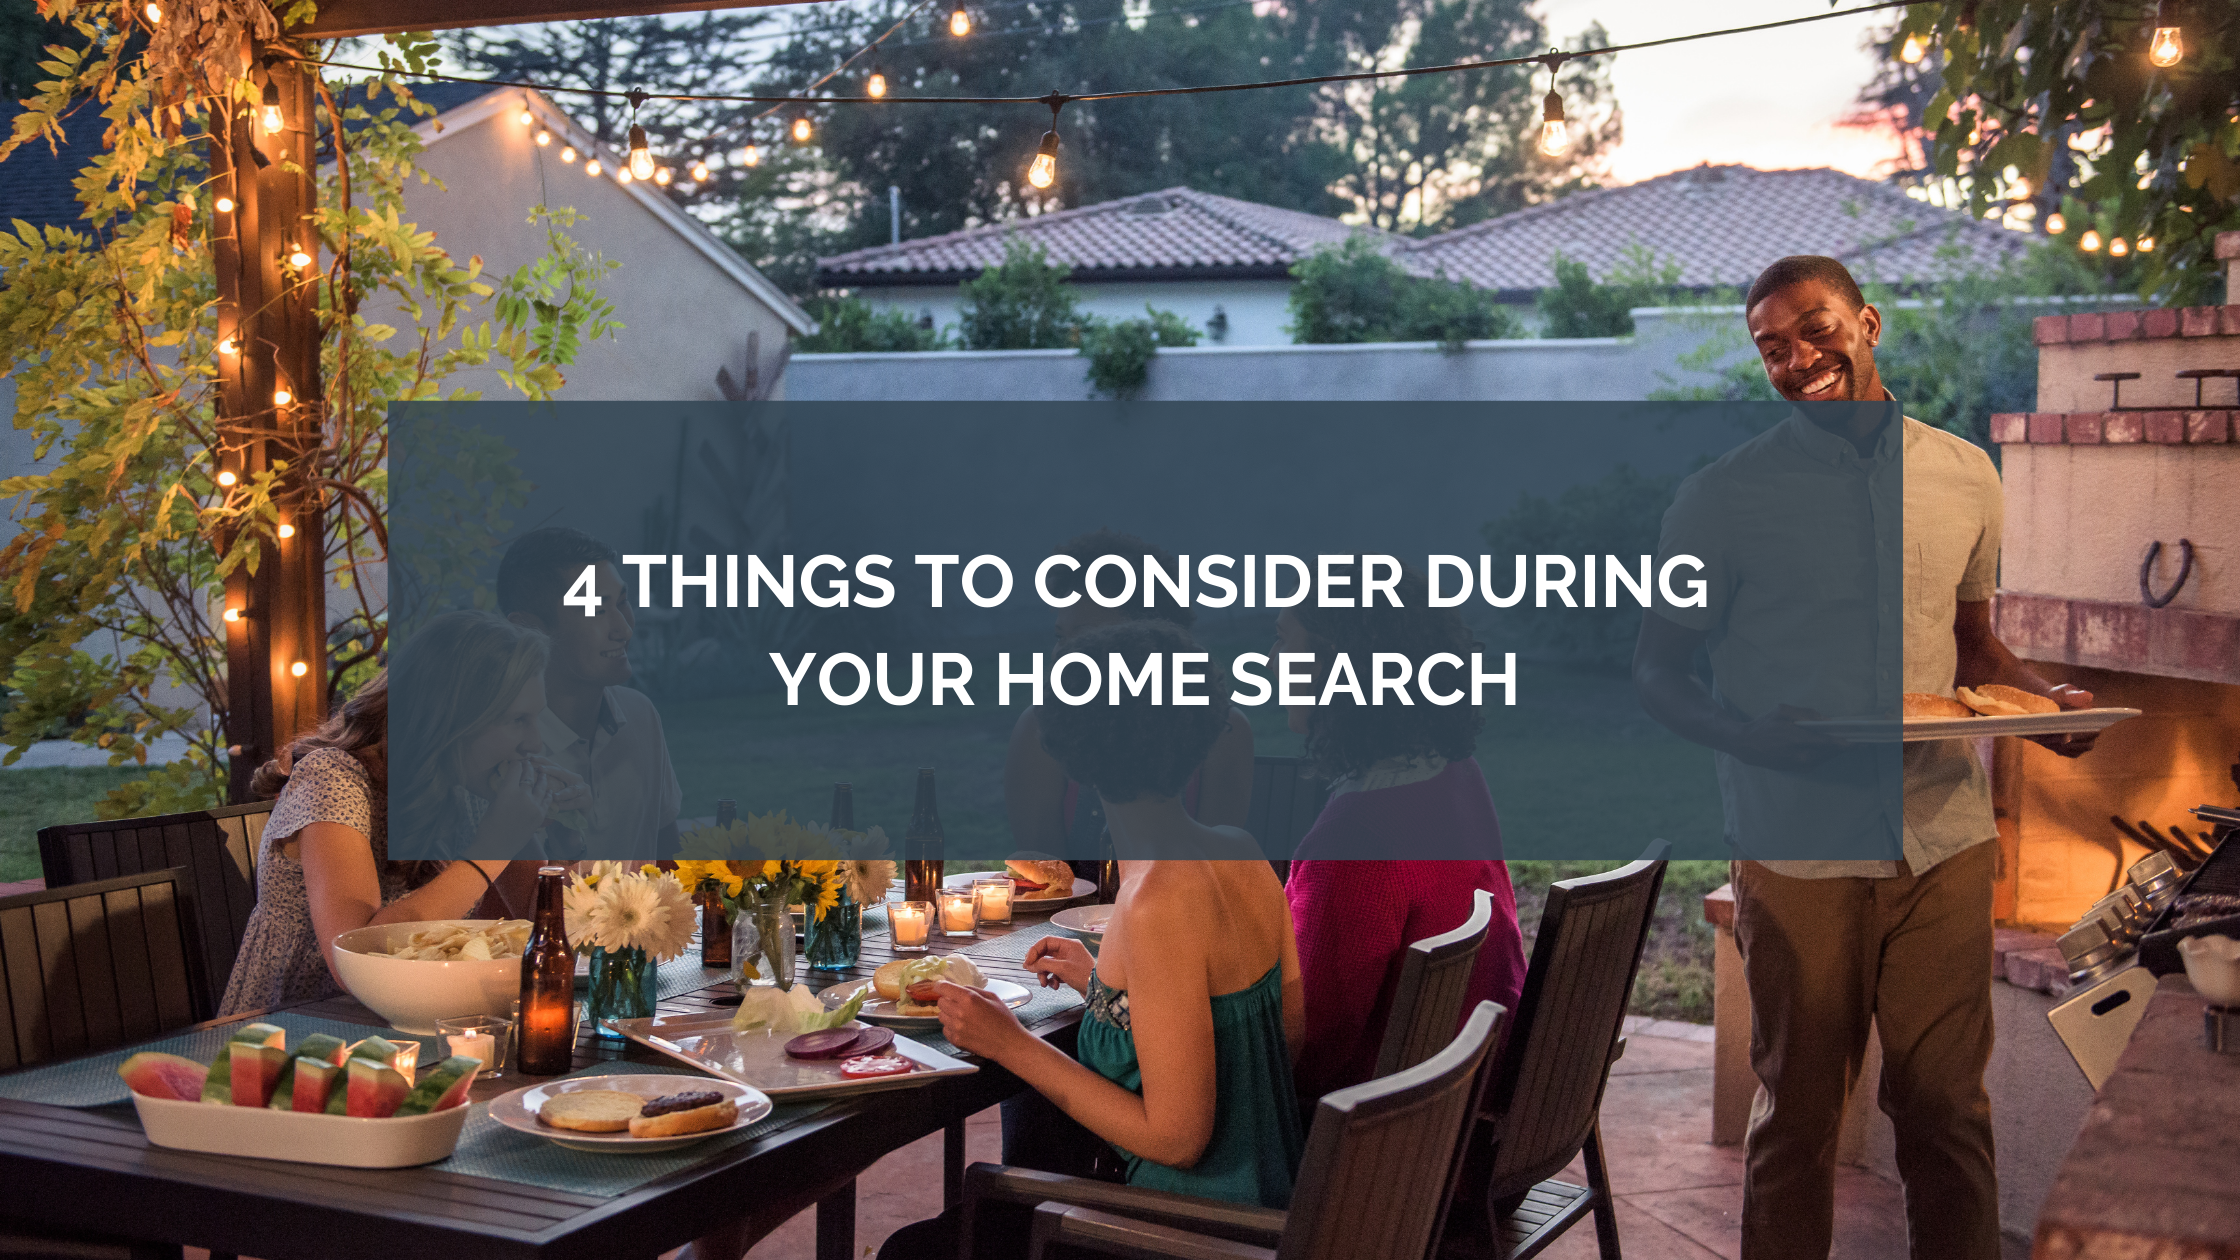 4 Things to Consider During Your Home Search